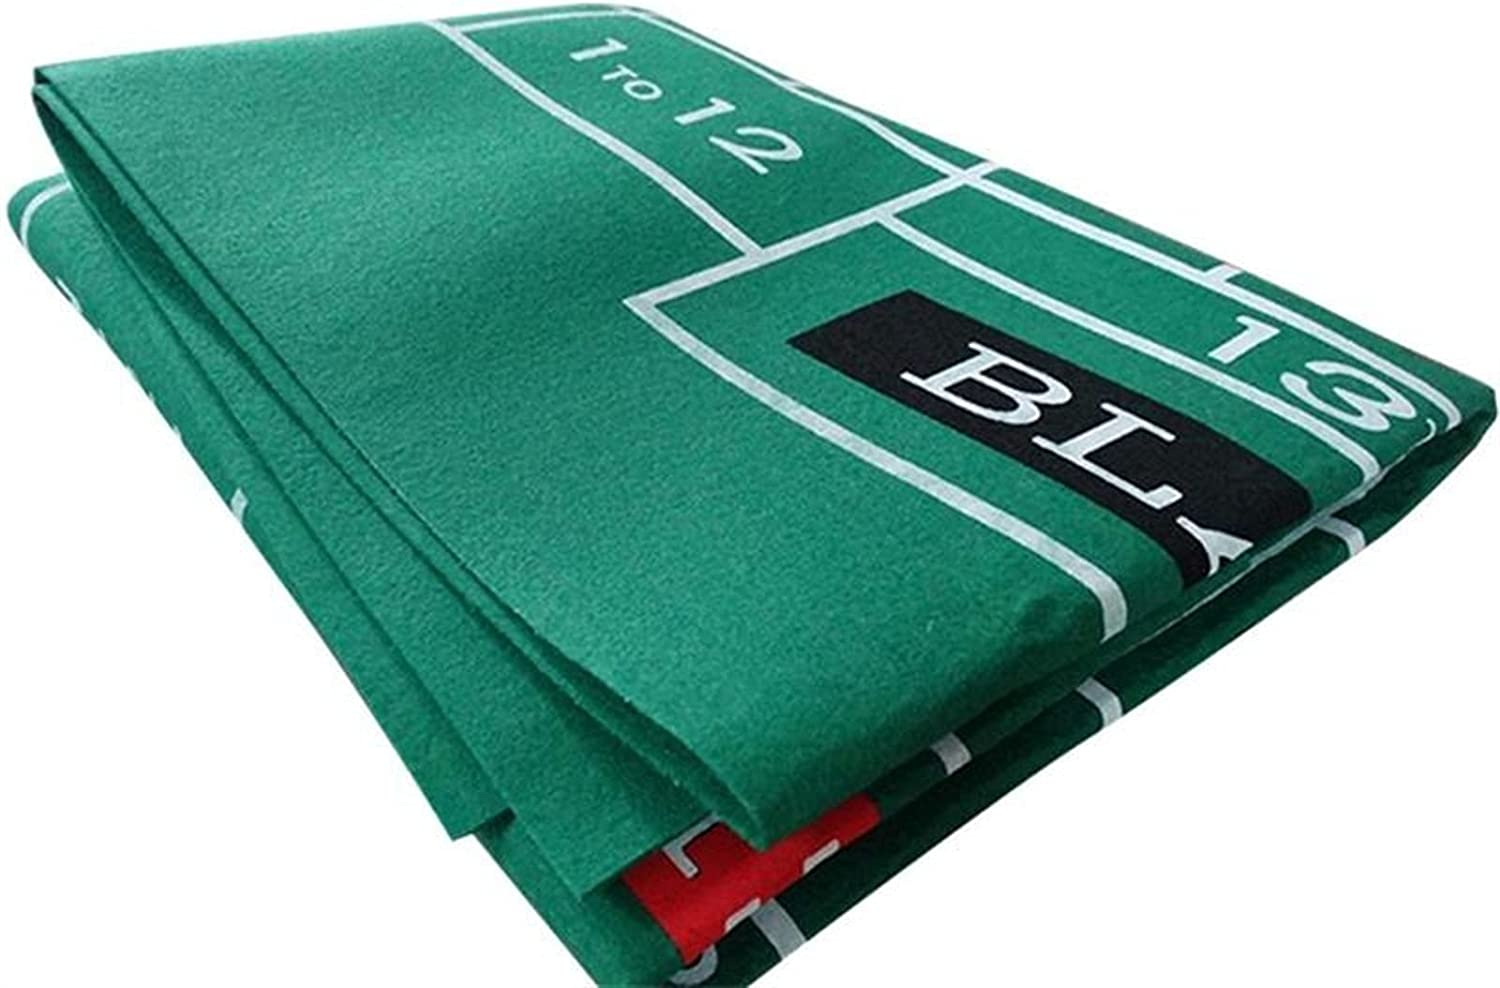 WERTYU Poker Branded goods Tablecloth Double-Sided Fort Worth Mall Game Rou Russian